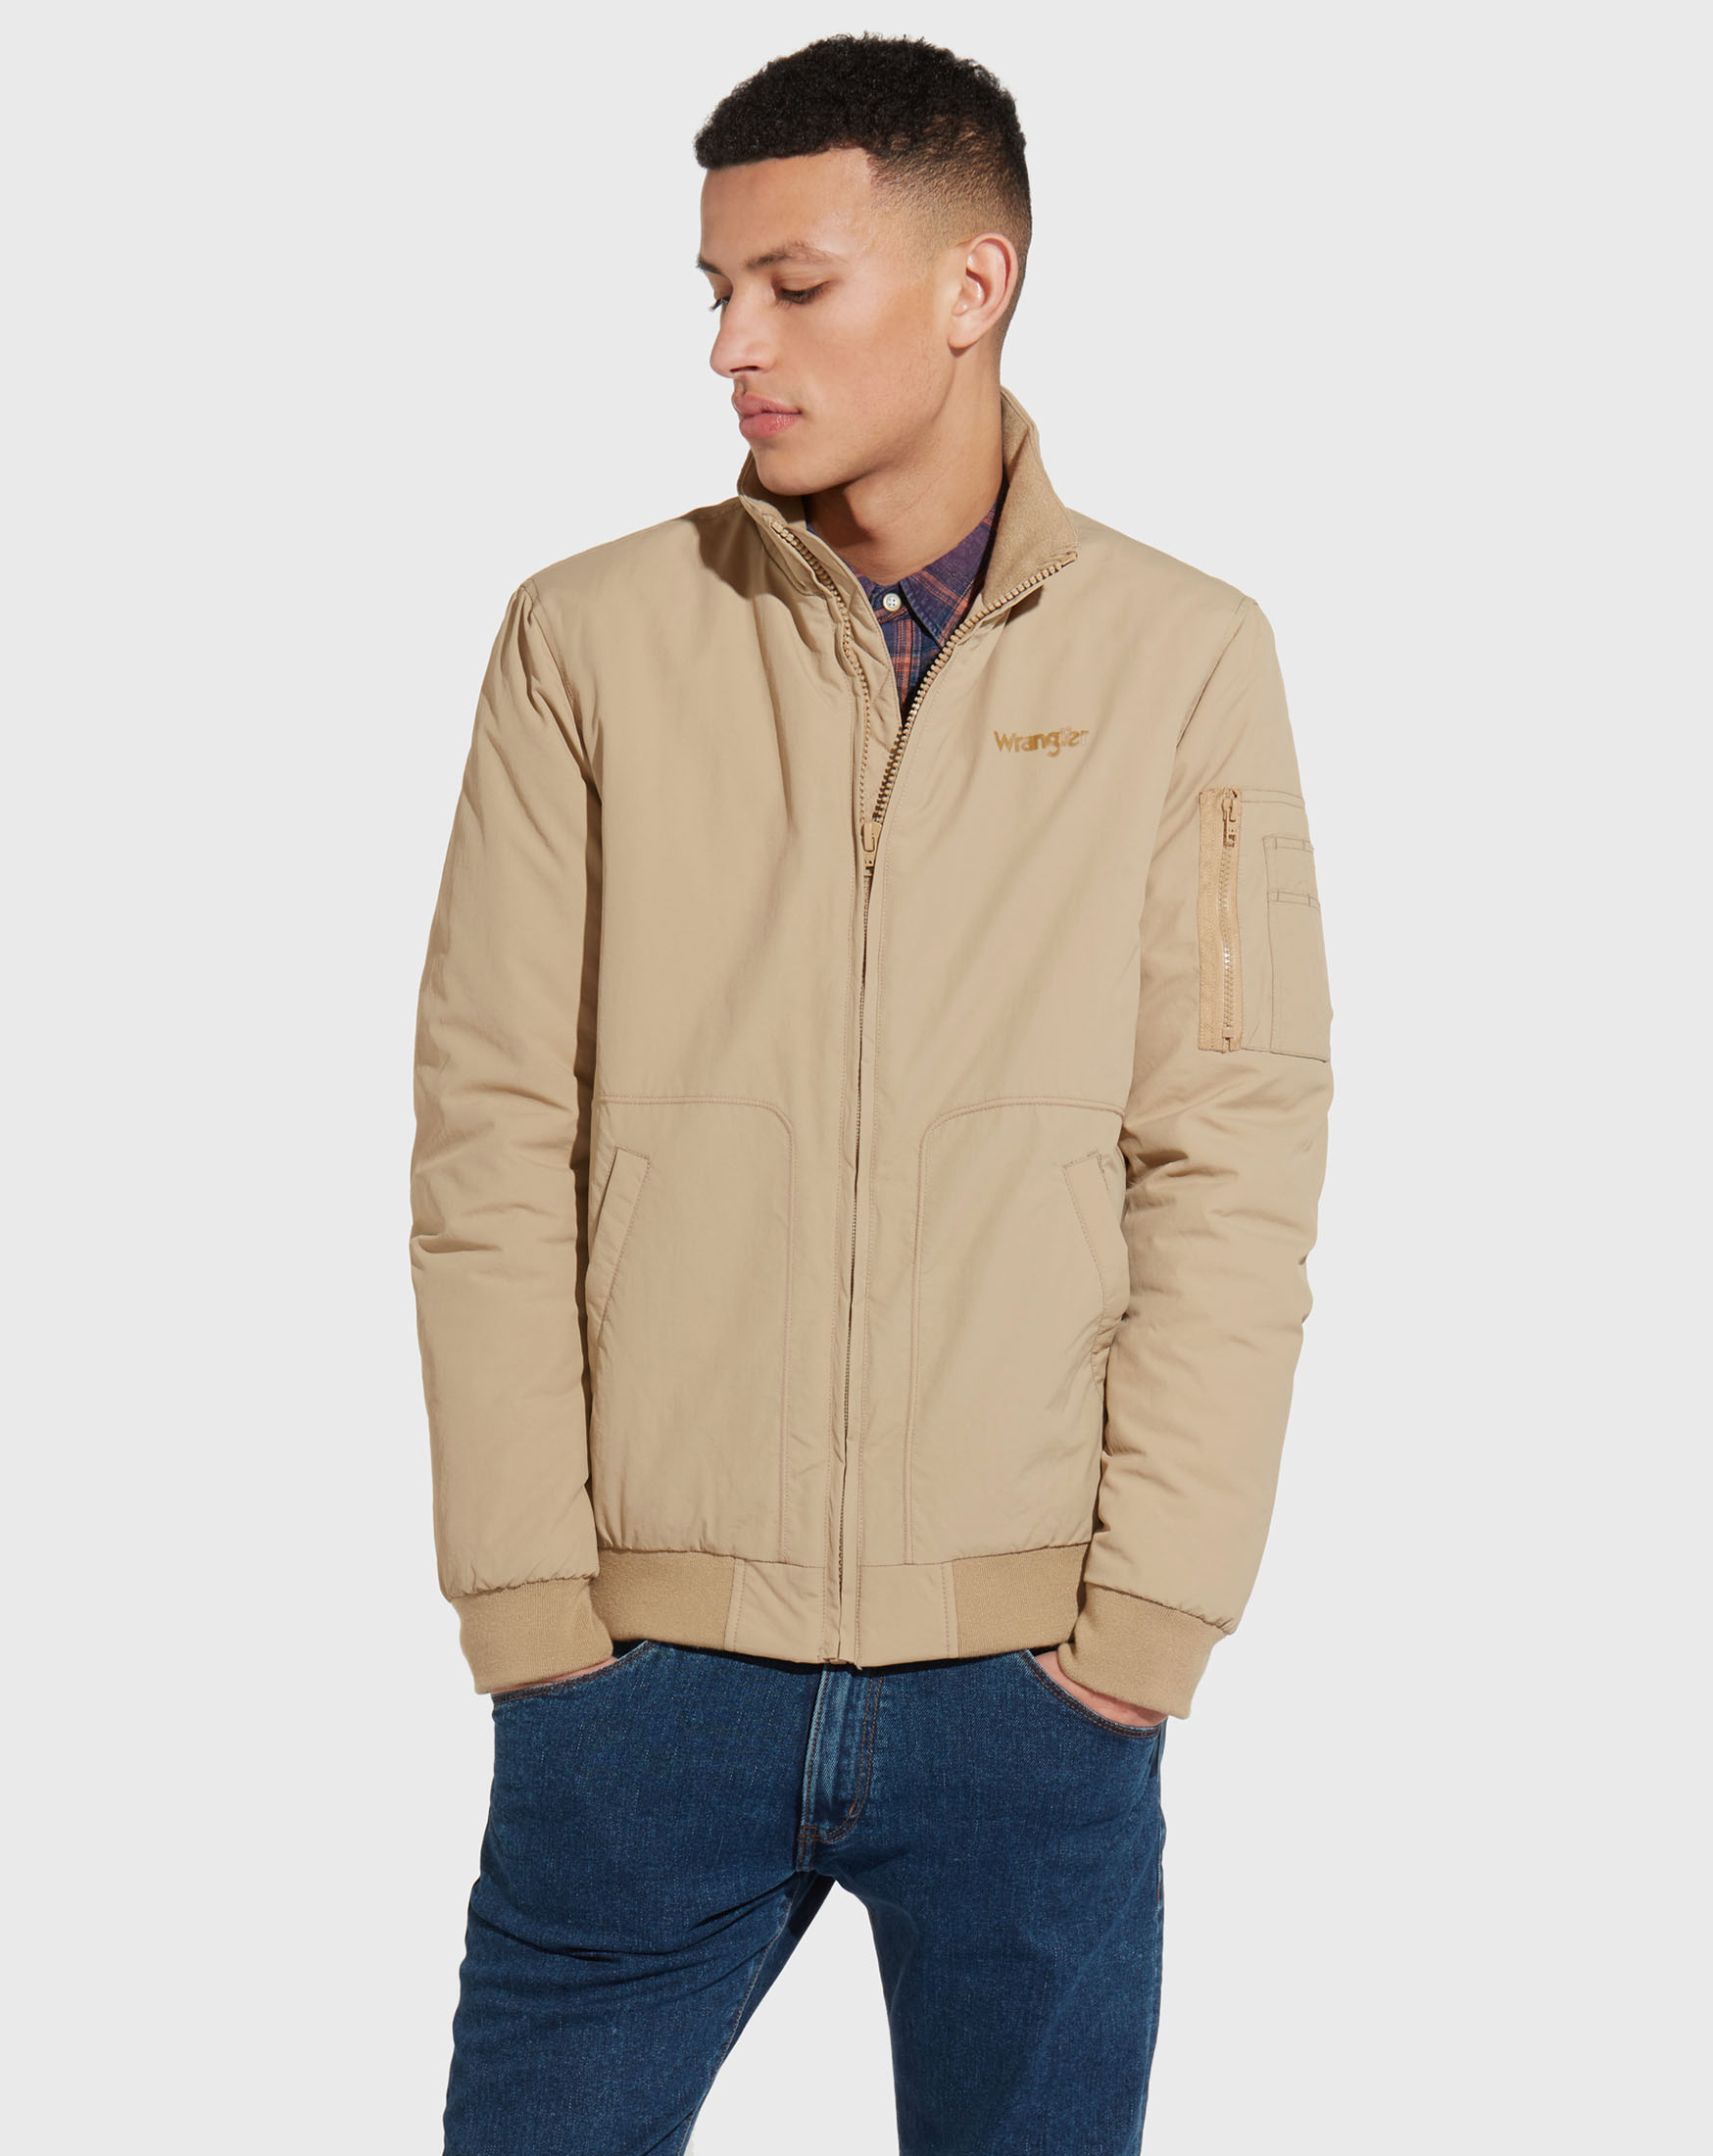 detail CLASSIC BOMBER CLAY BEIGE